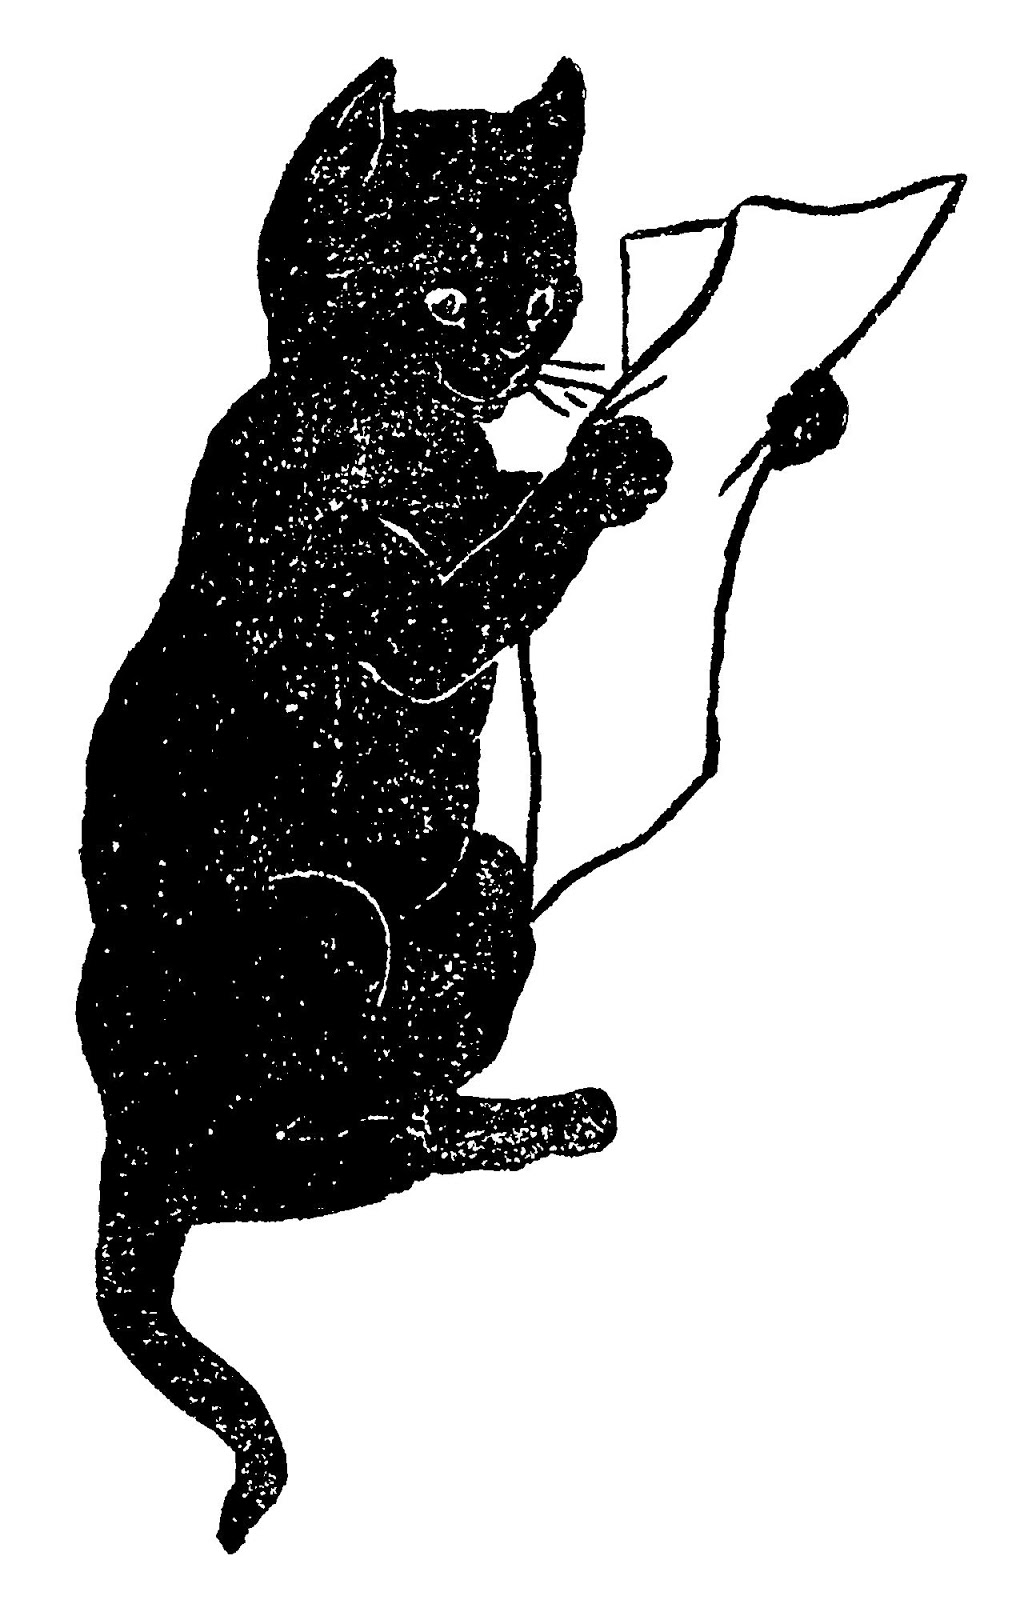 small resolution of black cat funny clipart image reading paper illustration animal antique